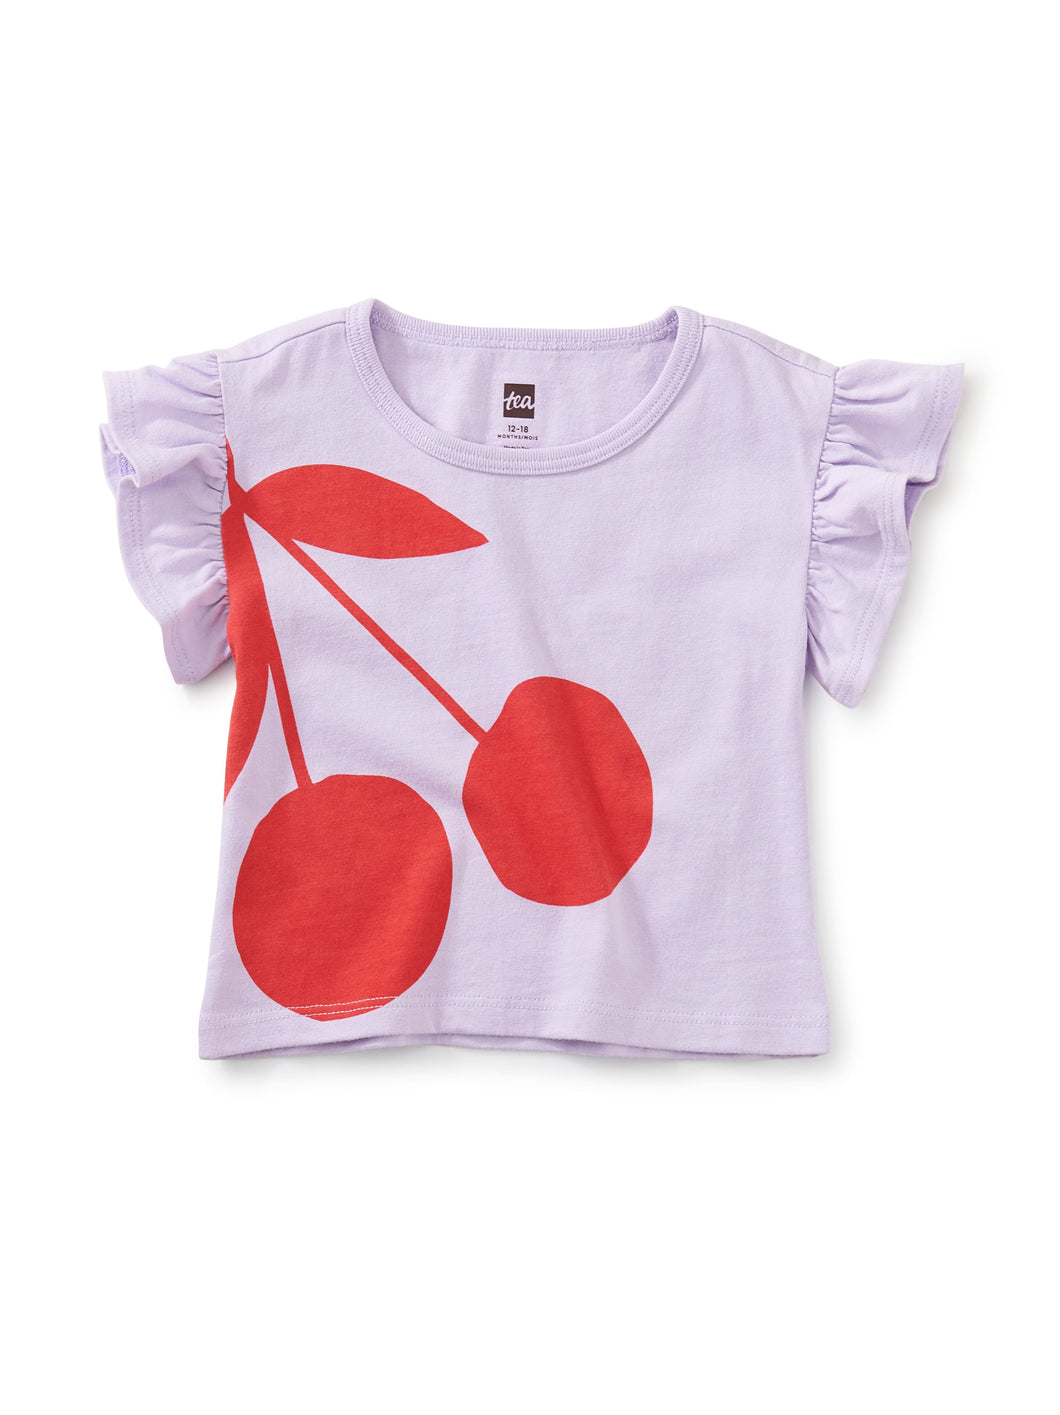 Tea Collection Cherry on Top Flutter Tee - Orion